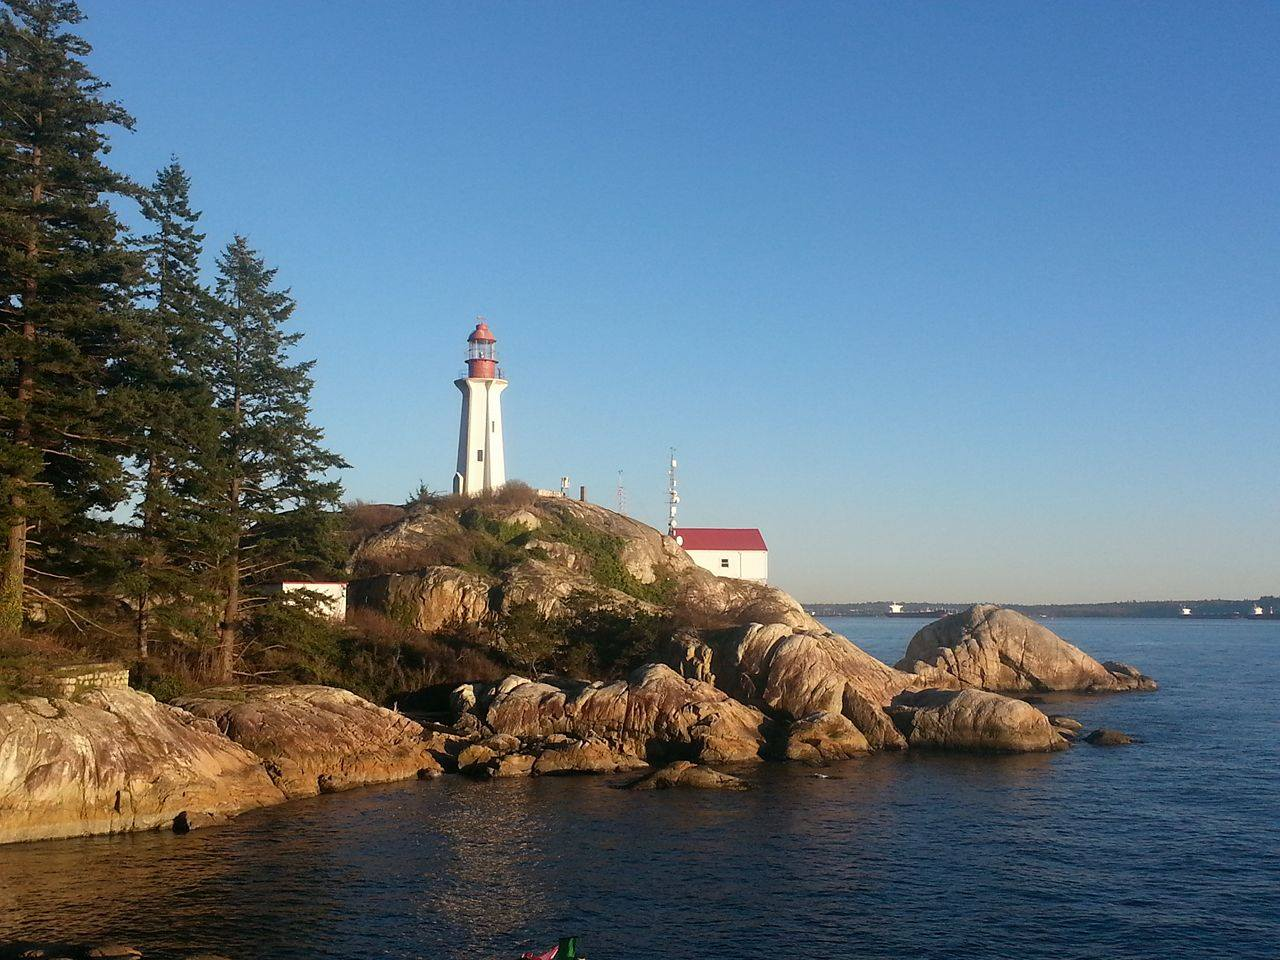 Image of Lighthouse Park in West Vancouver